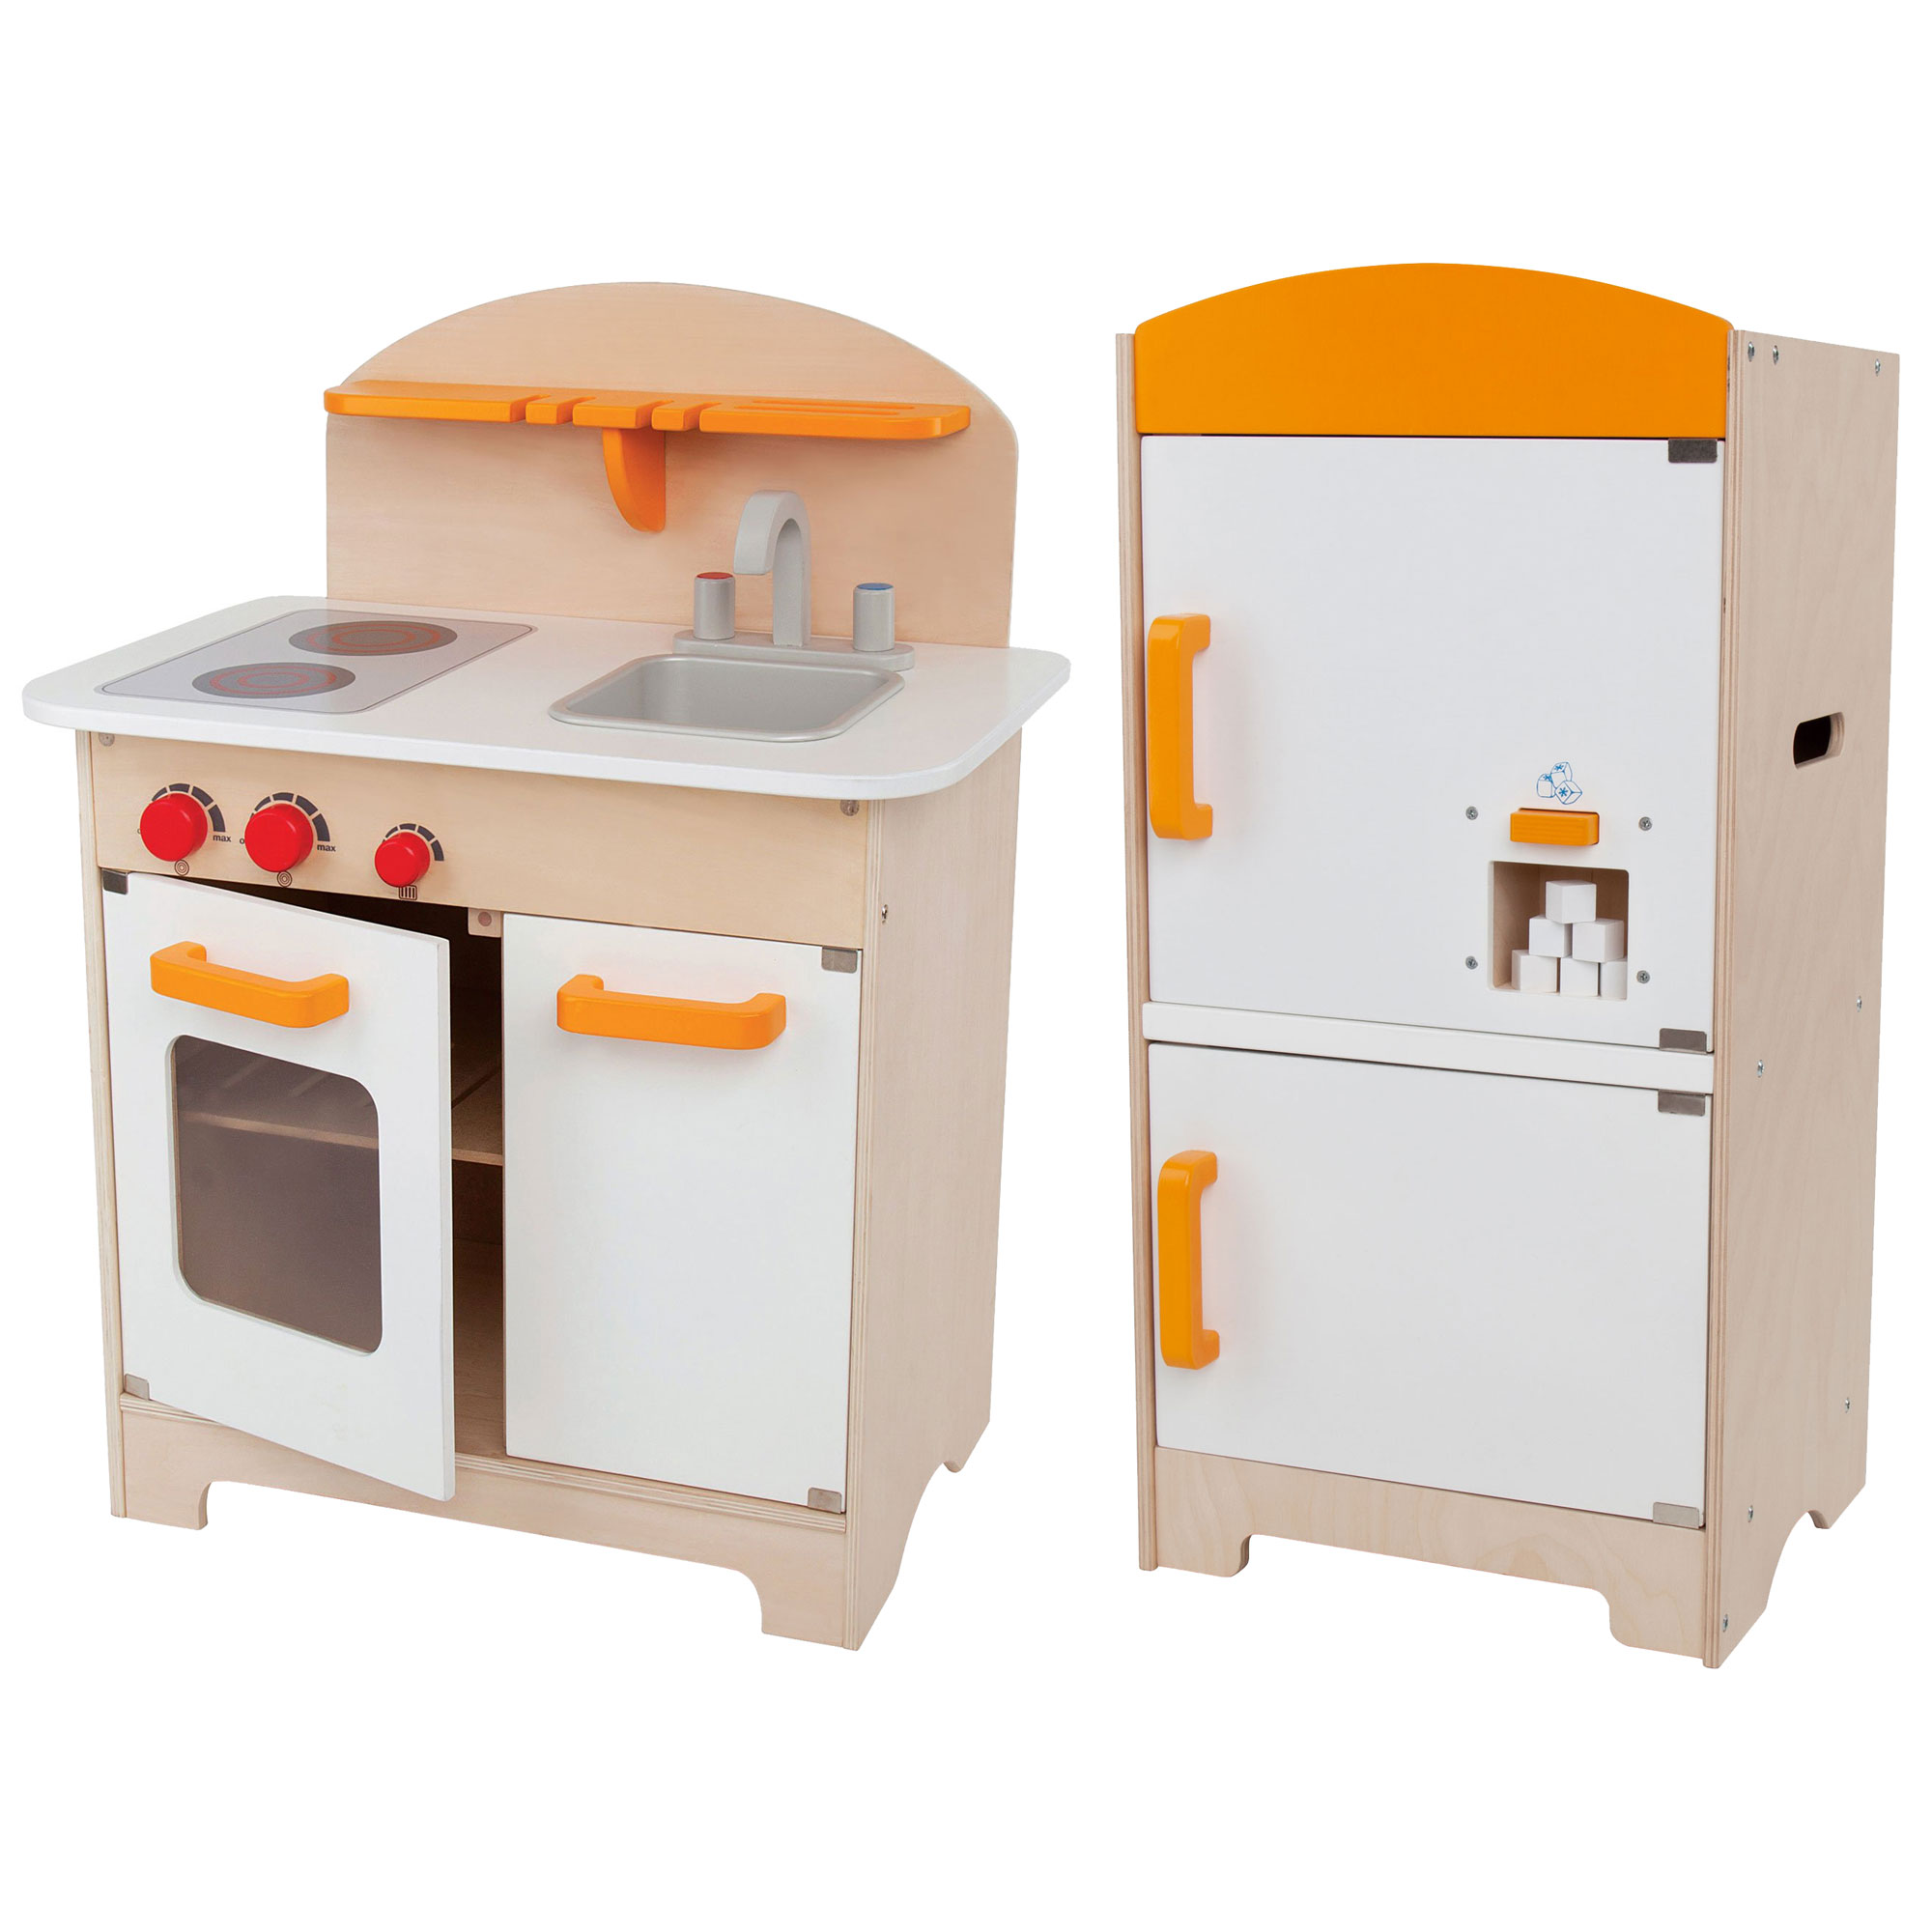 Hape Gourmet Kitchen Toddler & Kids Wood Play Pretend Kitchen and ...